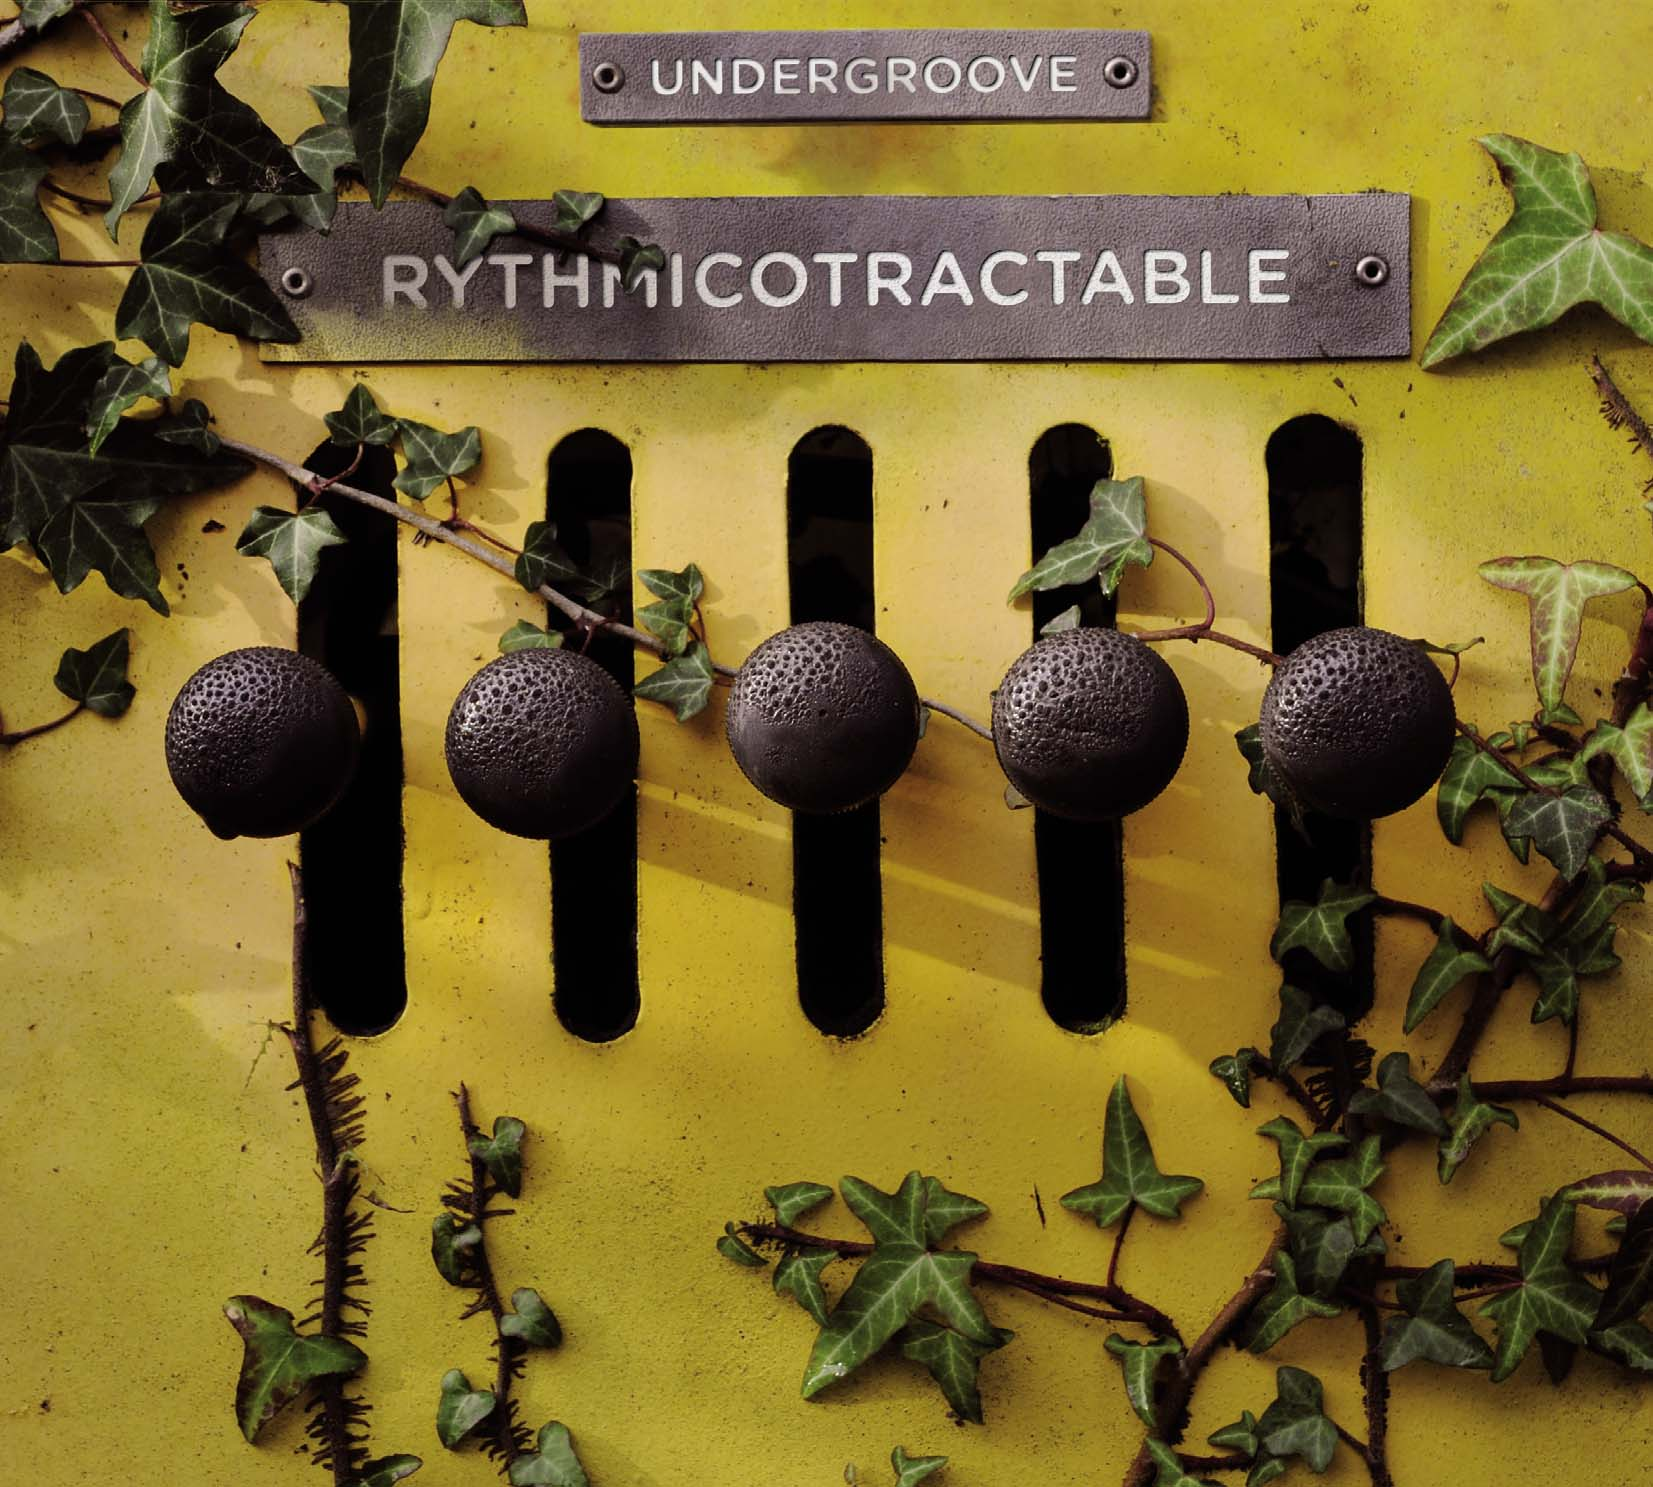 Undergroove - Ryhtmicotractable